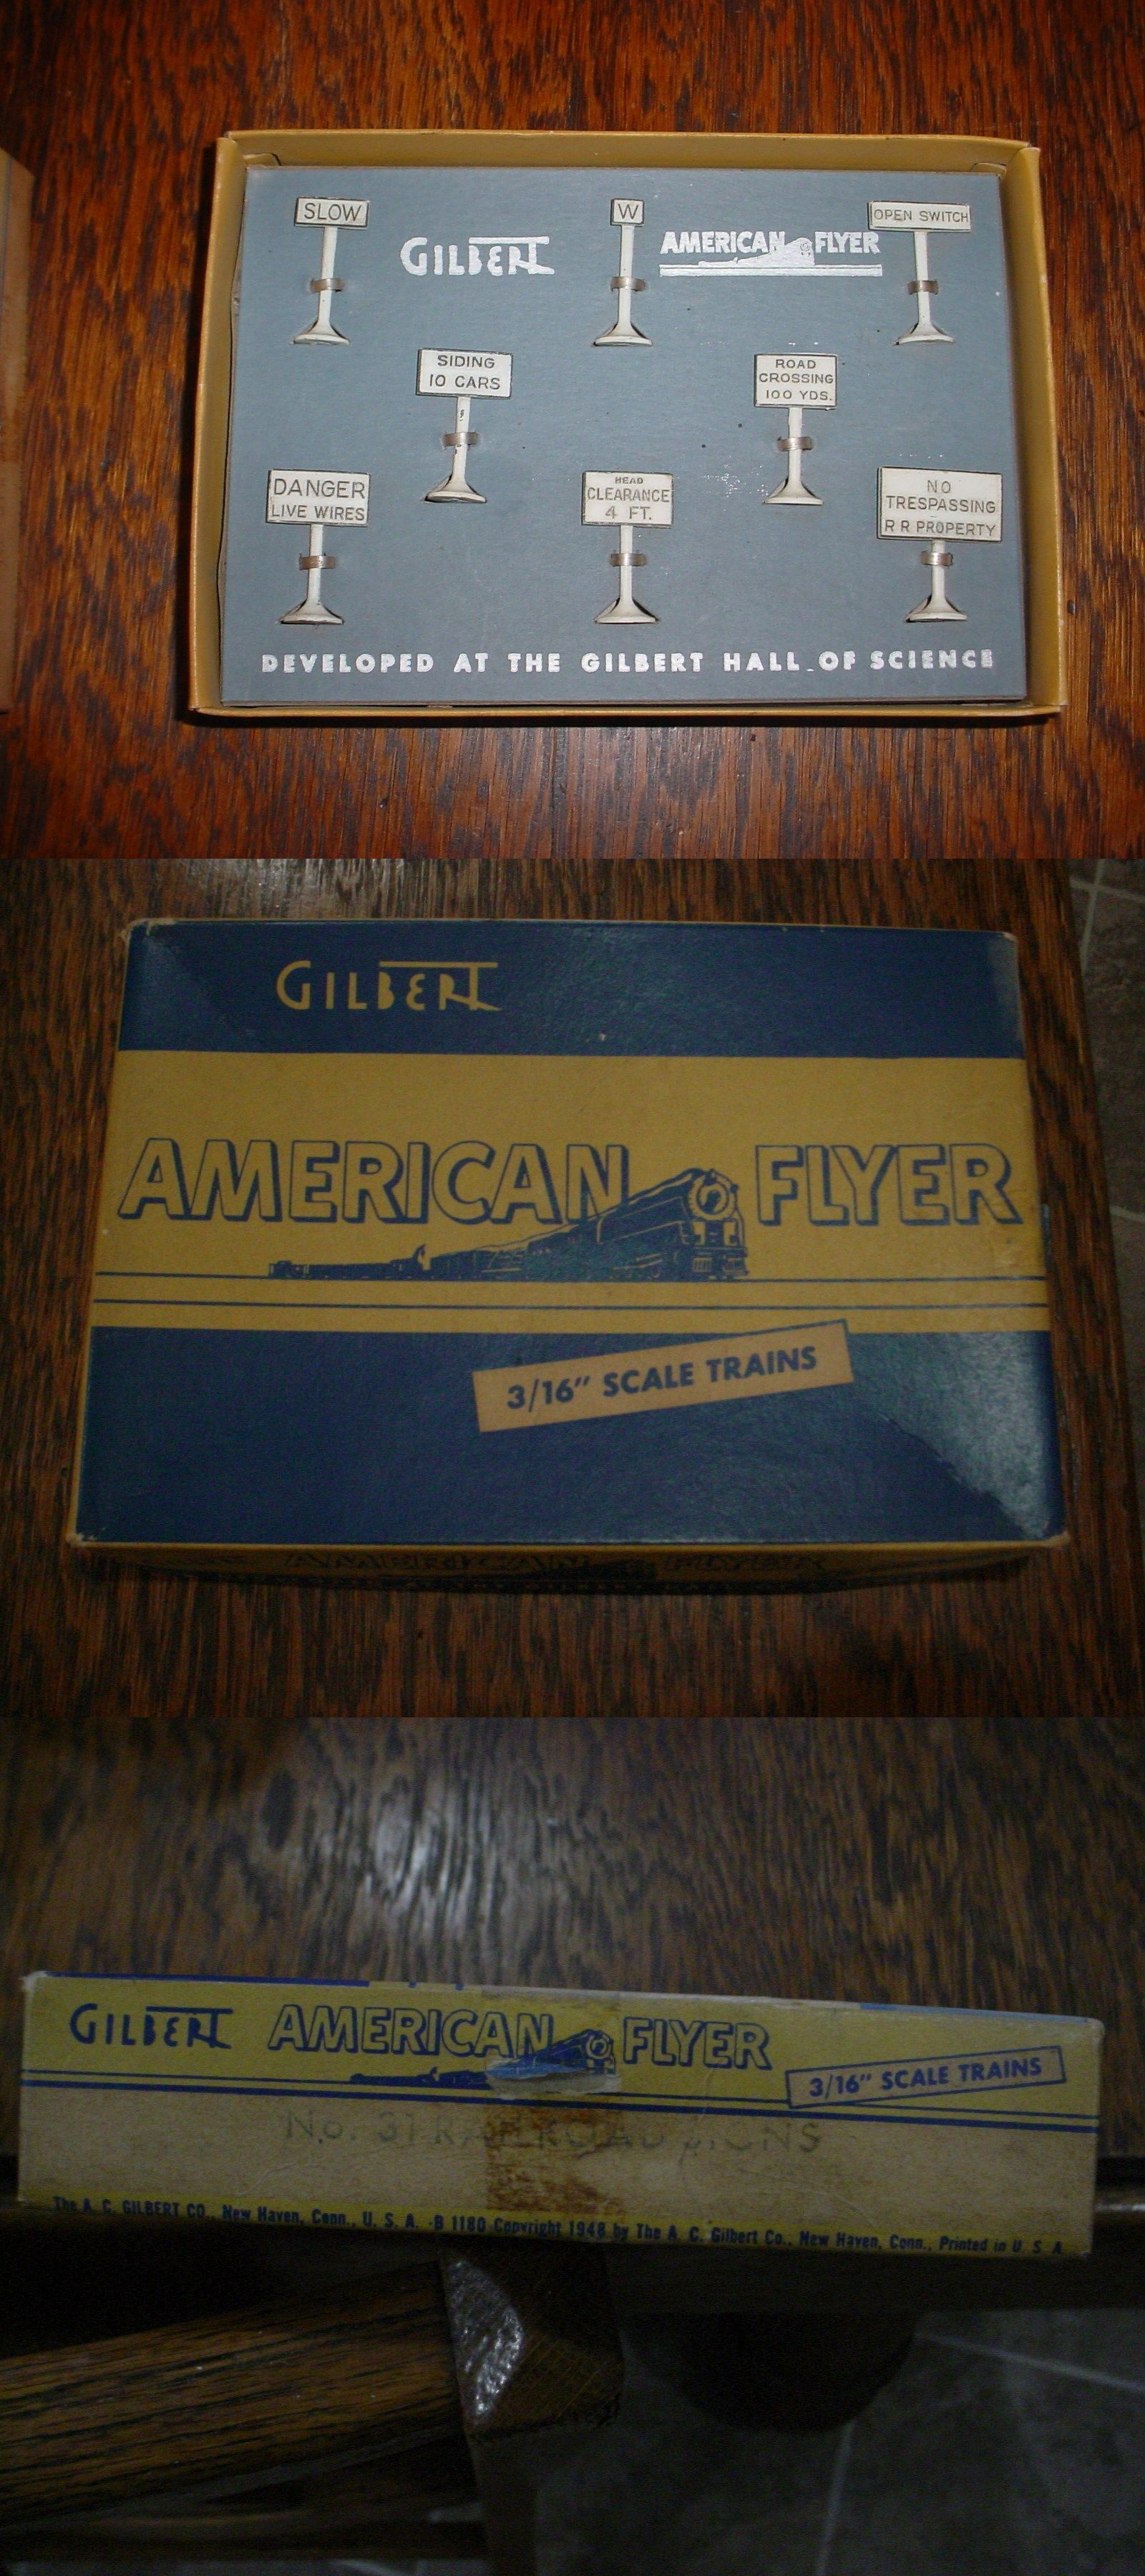 American Flyer Wiring Diagram Highway Flasher House Diagrams Track 180284 31 Railroad Signs Unused In Original Rh Pinterest Com Accessories Trains 1950